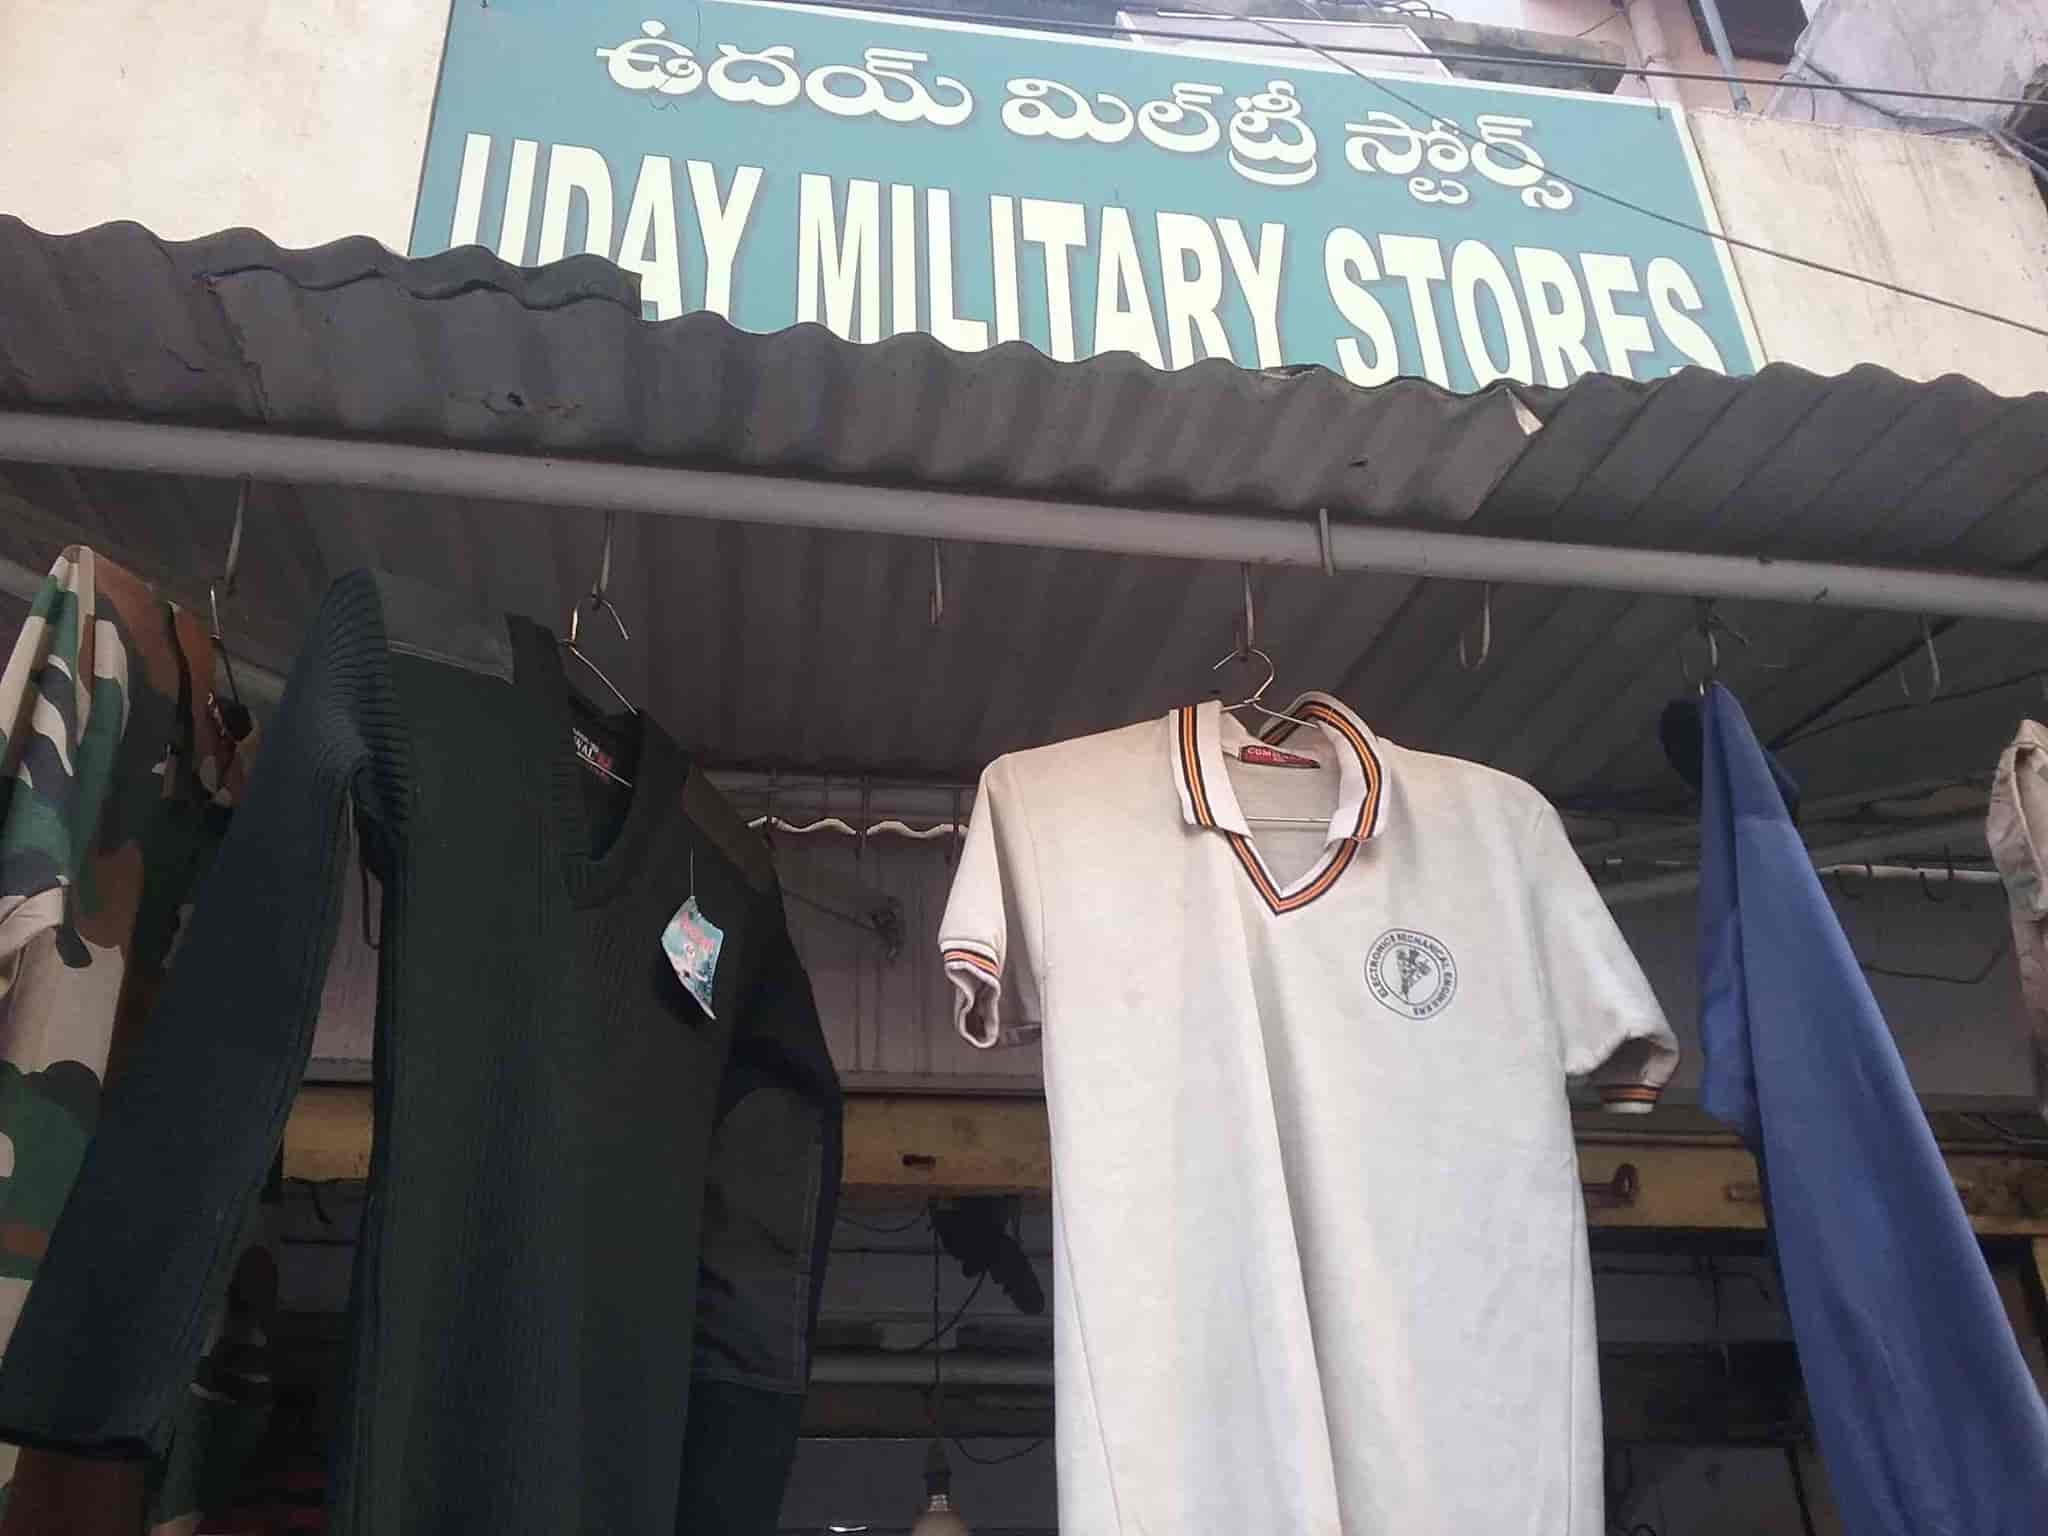 Uday Military Stores Photos, Lal Bazar, Hyderabad- Pictures & Images